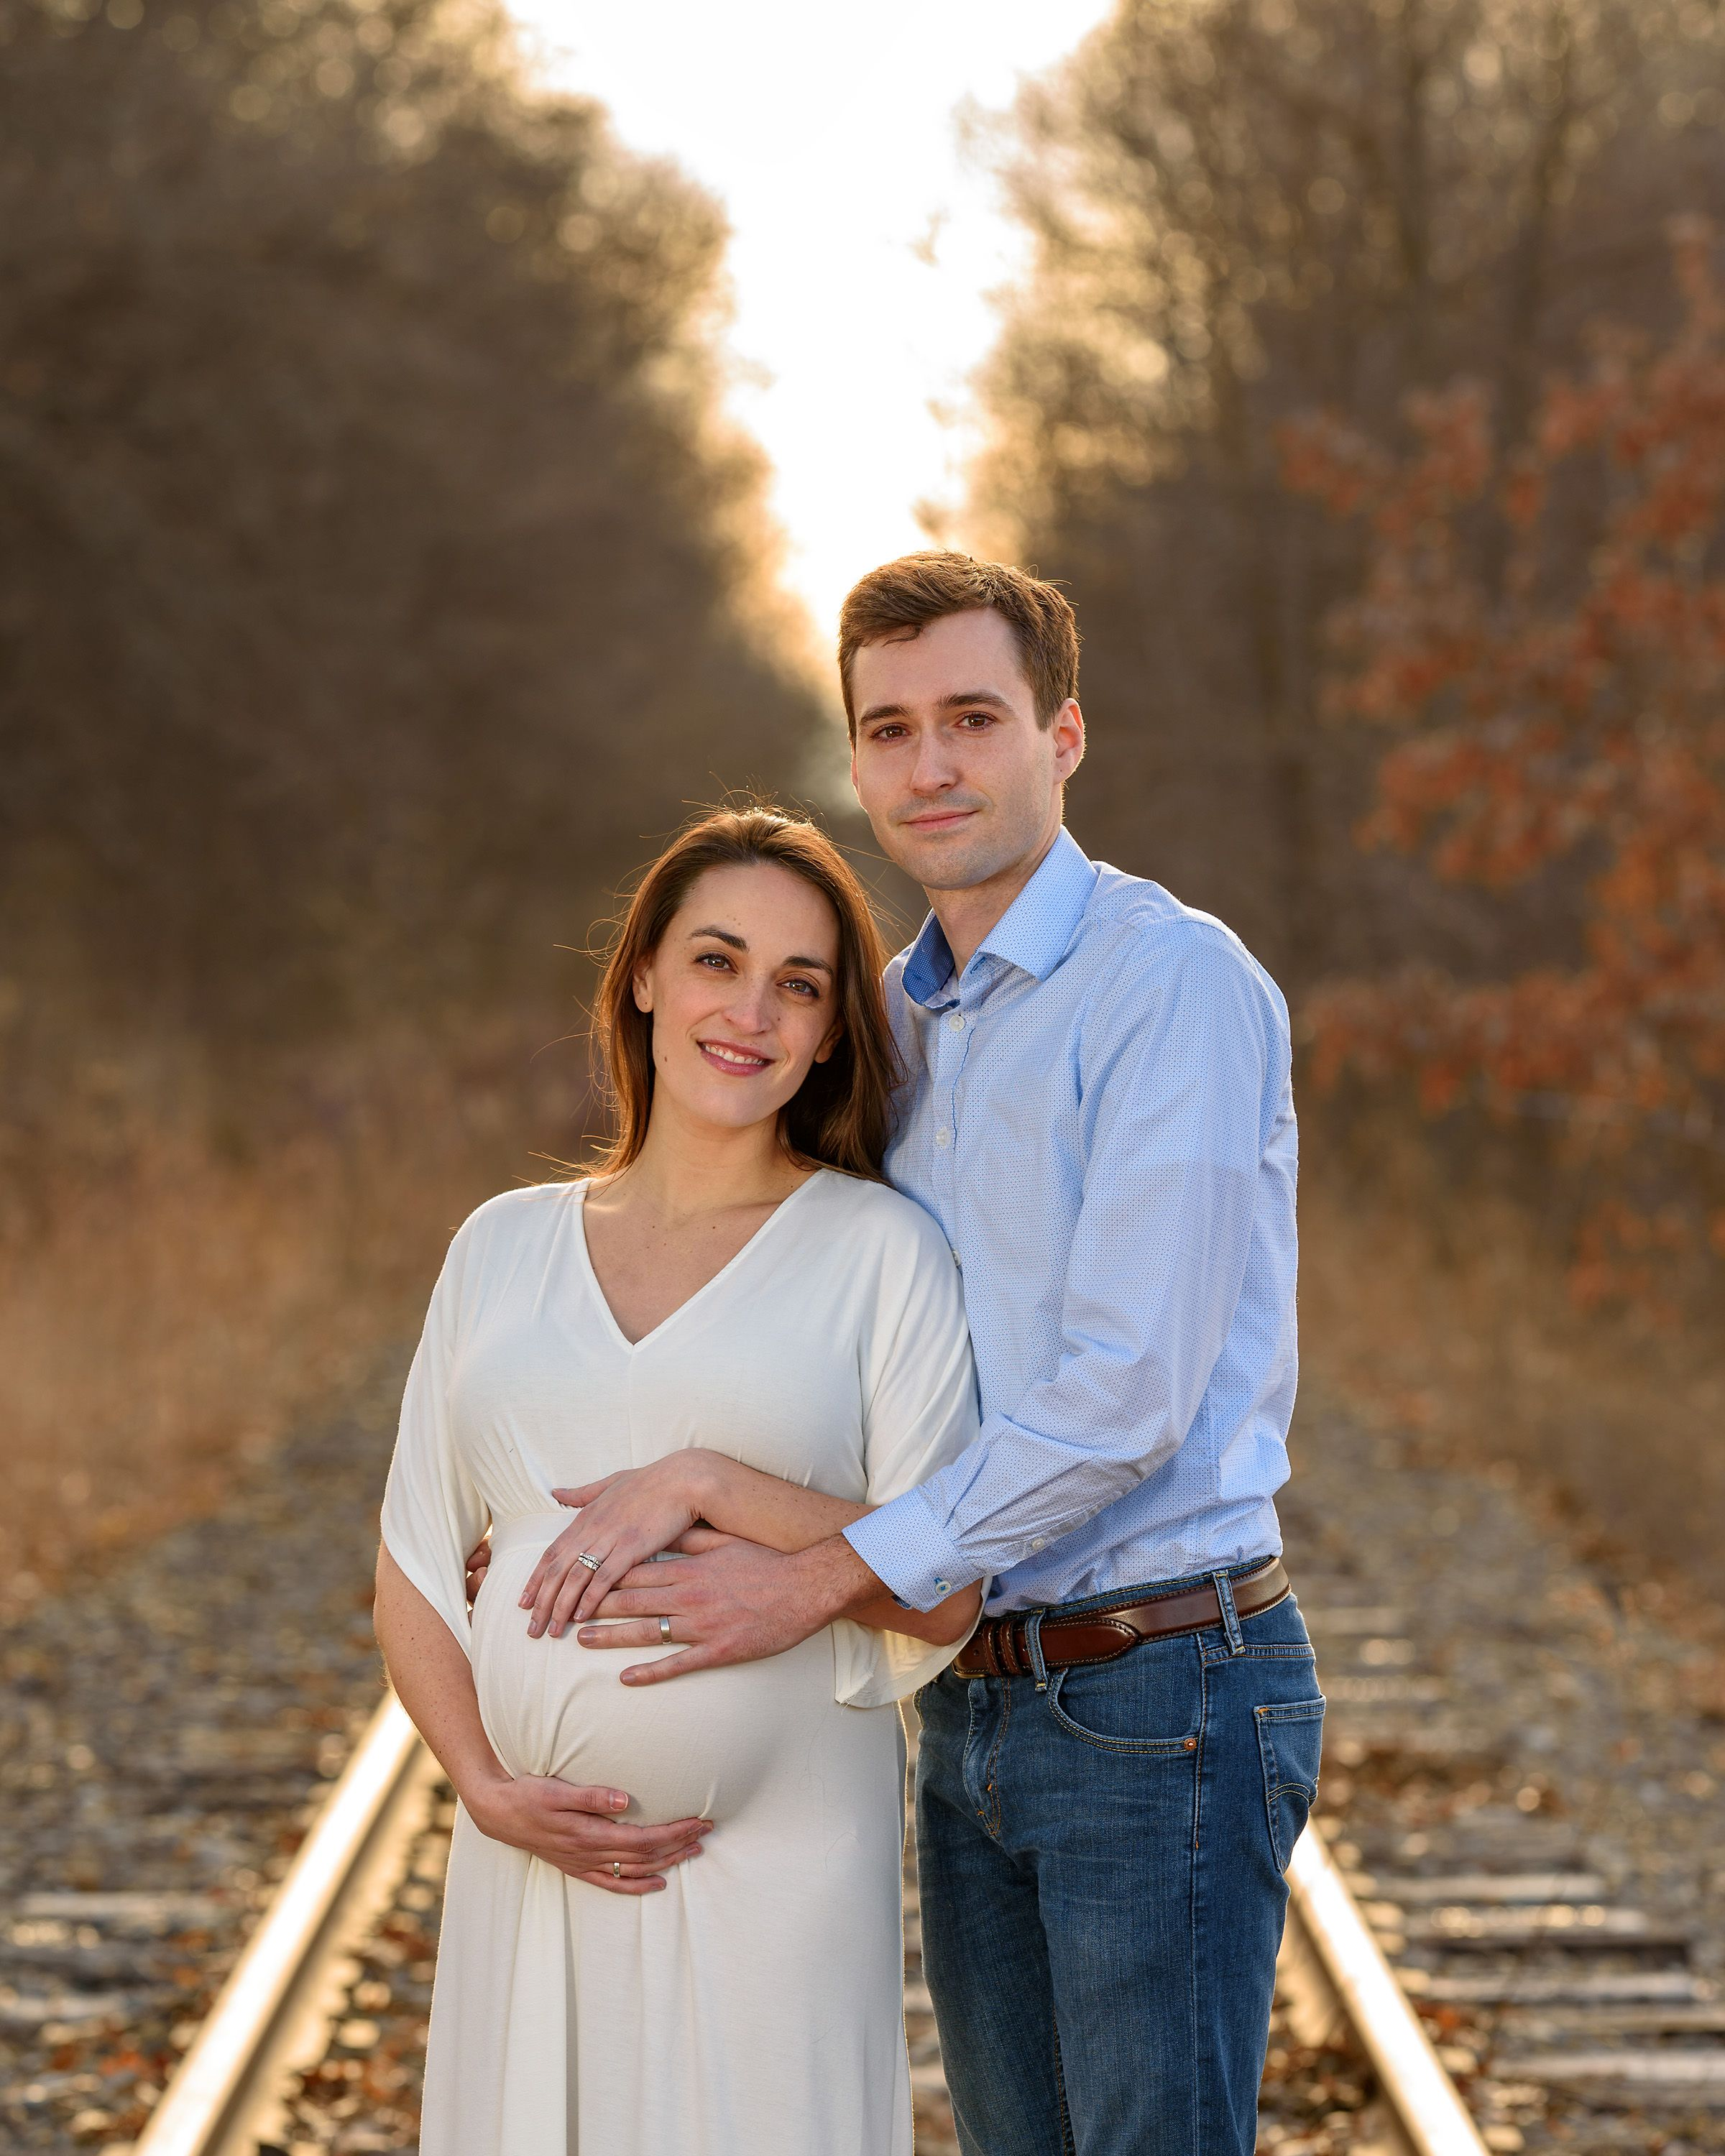 Couples maternity photo on deserted railbed